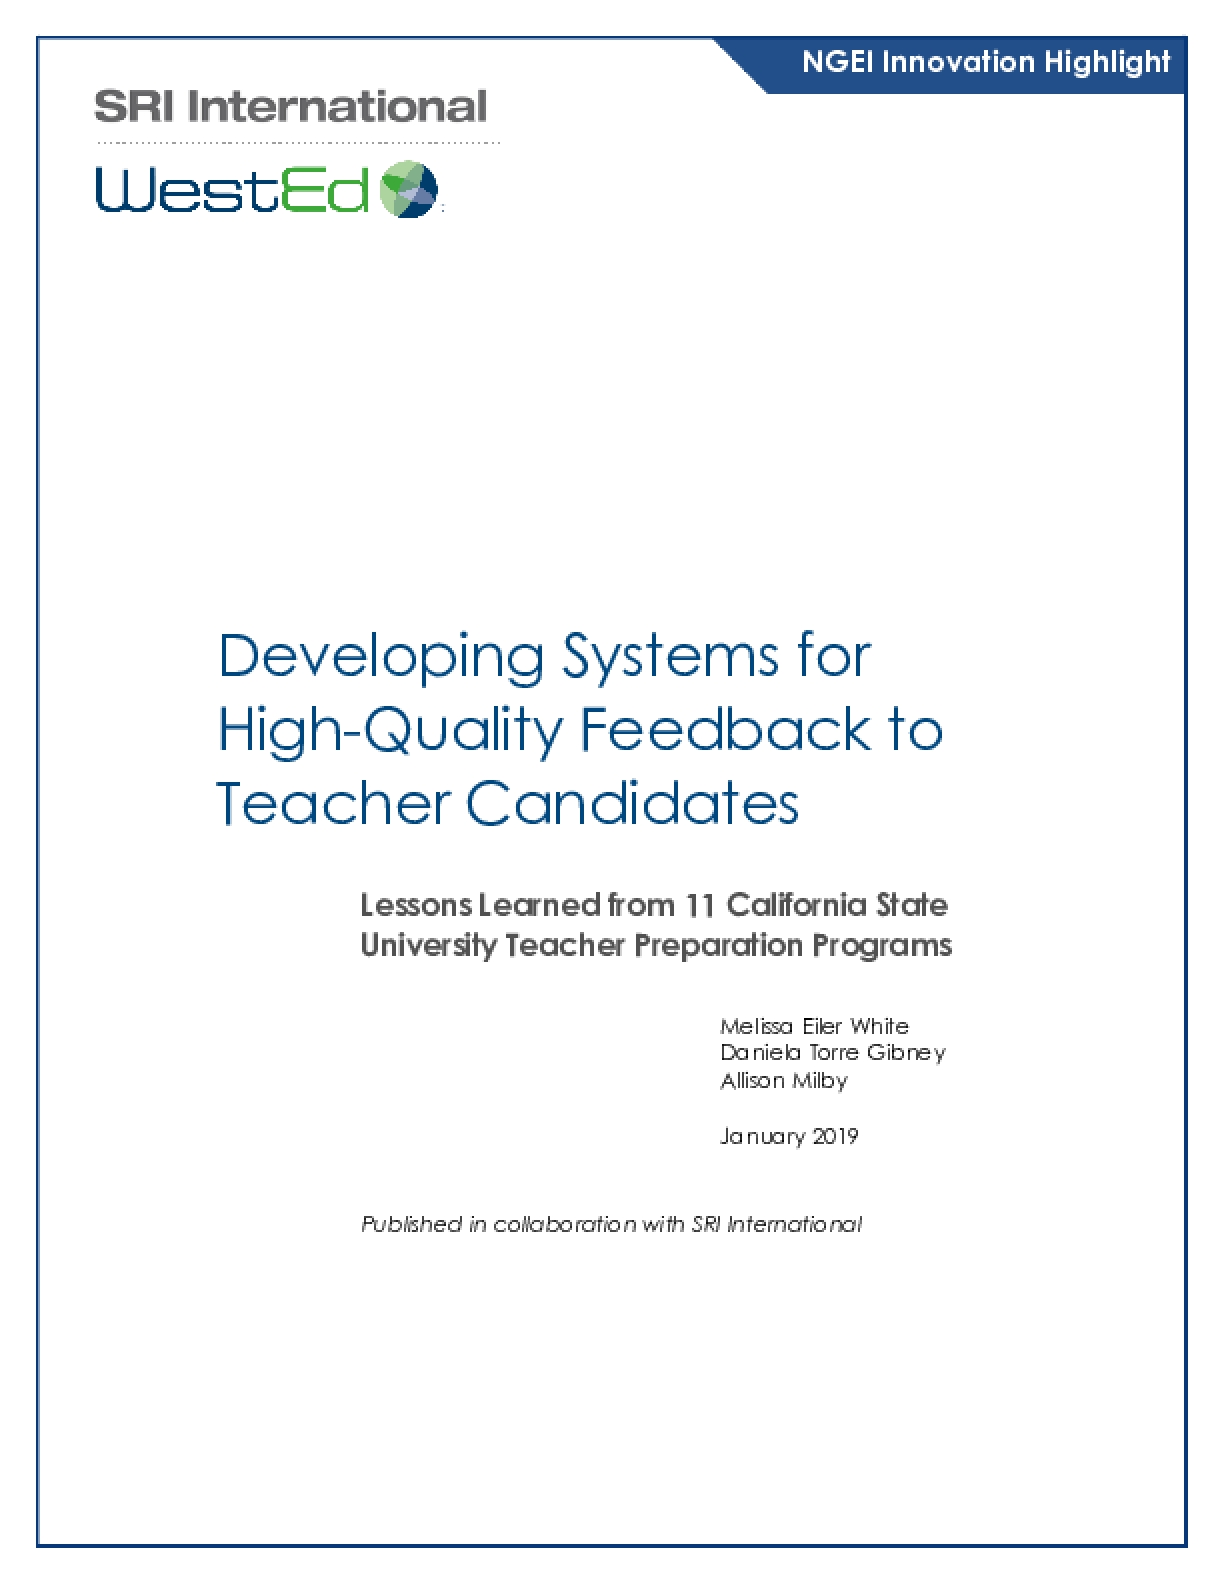 Developing Systems for High-Quality Feedback to Teacher Candidates: Lessons Learned from 11 California State University Teacher Preparation Programs